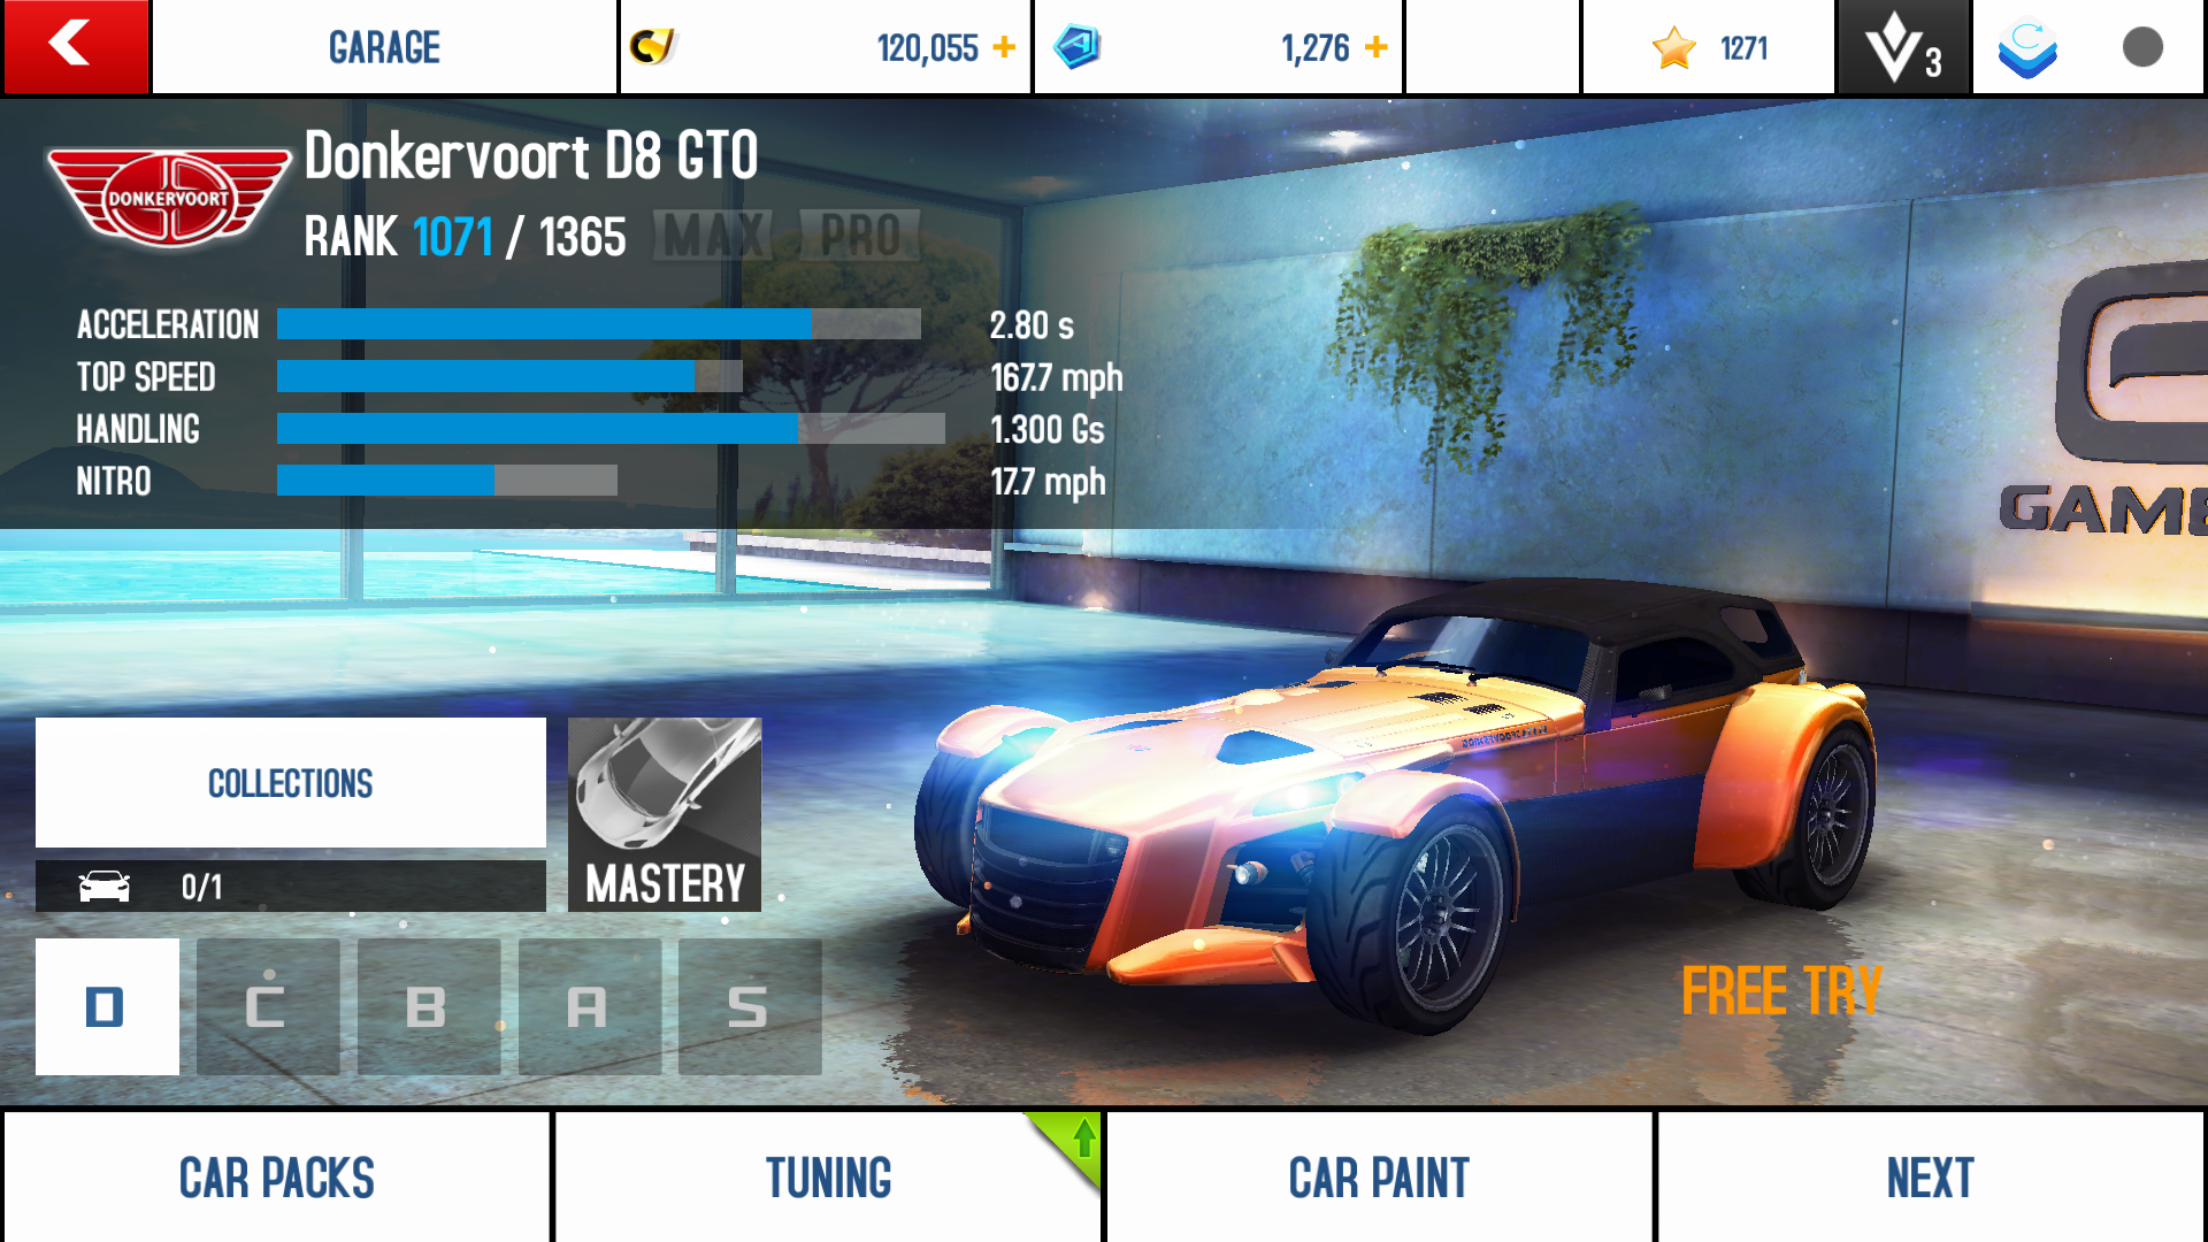 Donkervoort D8 GTO (stats)